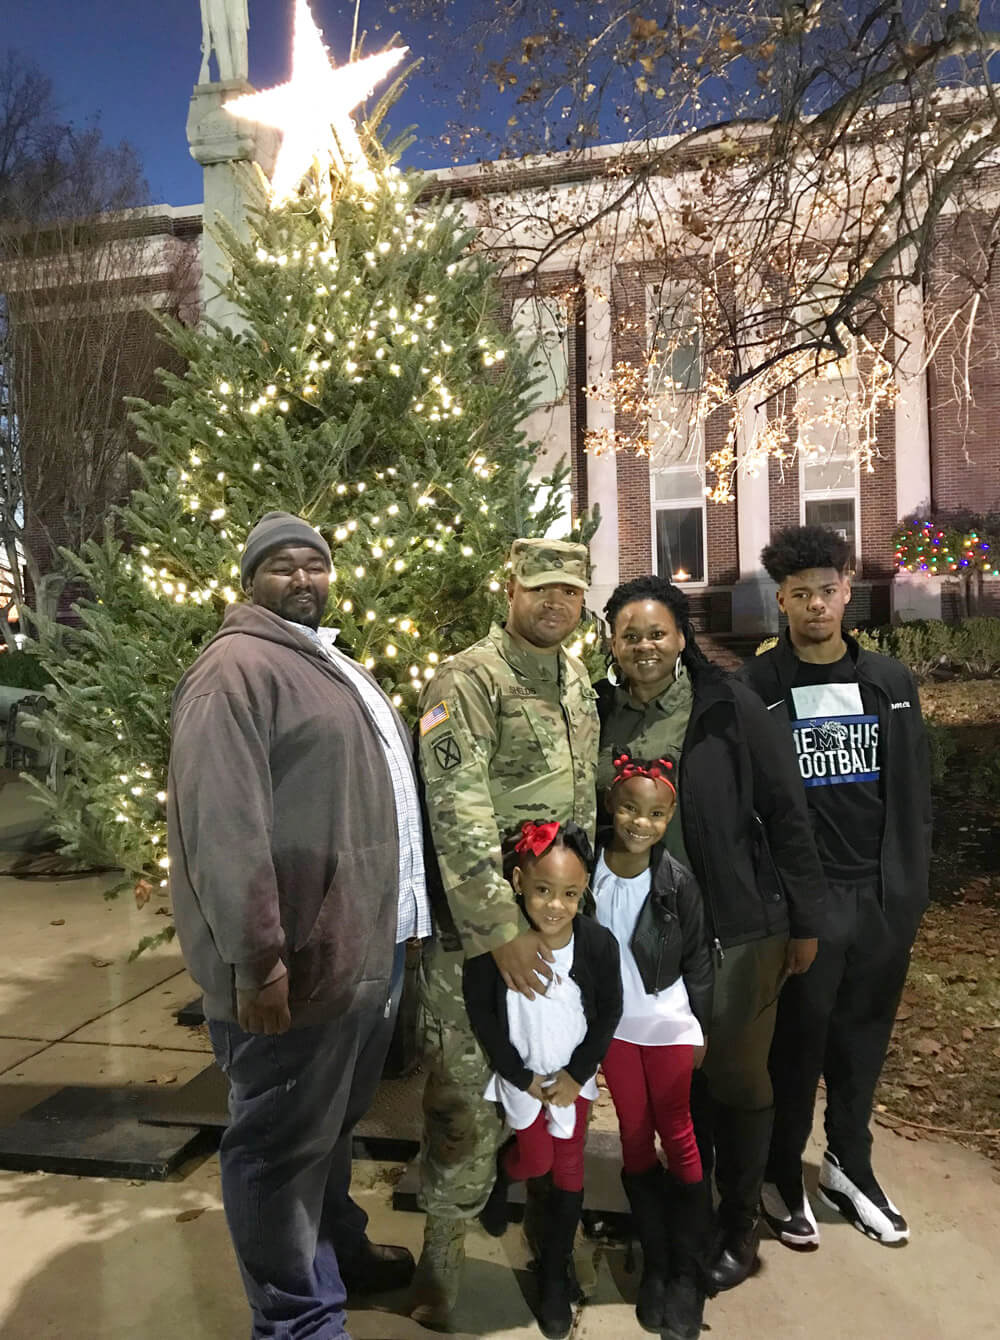 SSG Patrick Shields (second left) and his brother Gregory Shields (far left) stand with SSG Shields' wife and children before the brothers begin to lead as grand marshals in the 2018 Brownsville City Christmas Parade, an honor bestowed on the Shields brothers for their selfless acts at Haywood High School.